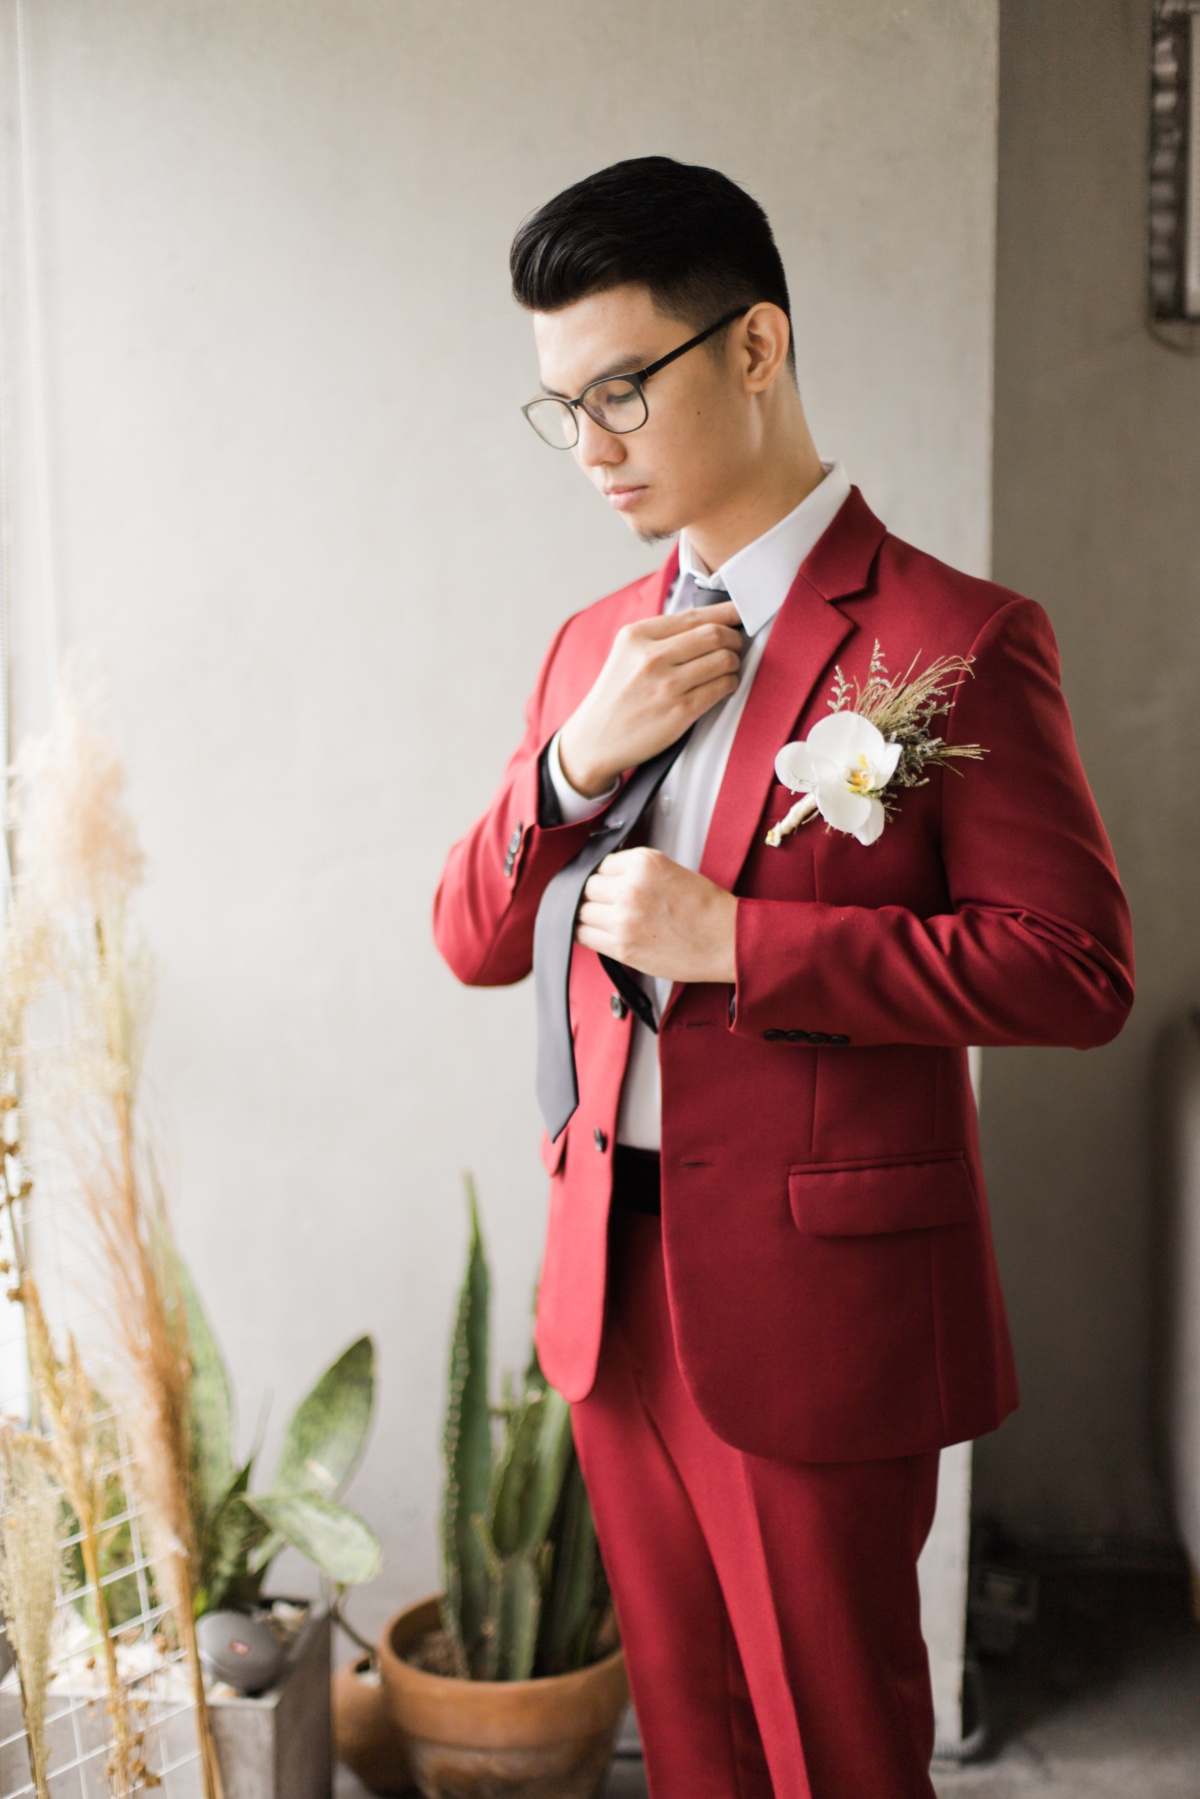 groom in wine colored suit with black tie and orchid boutonniere